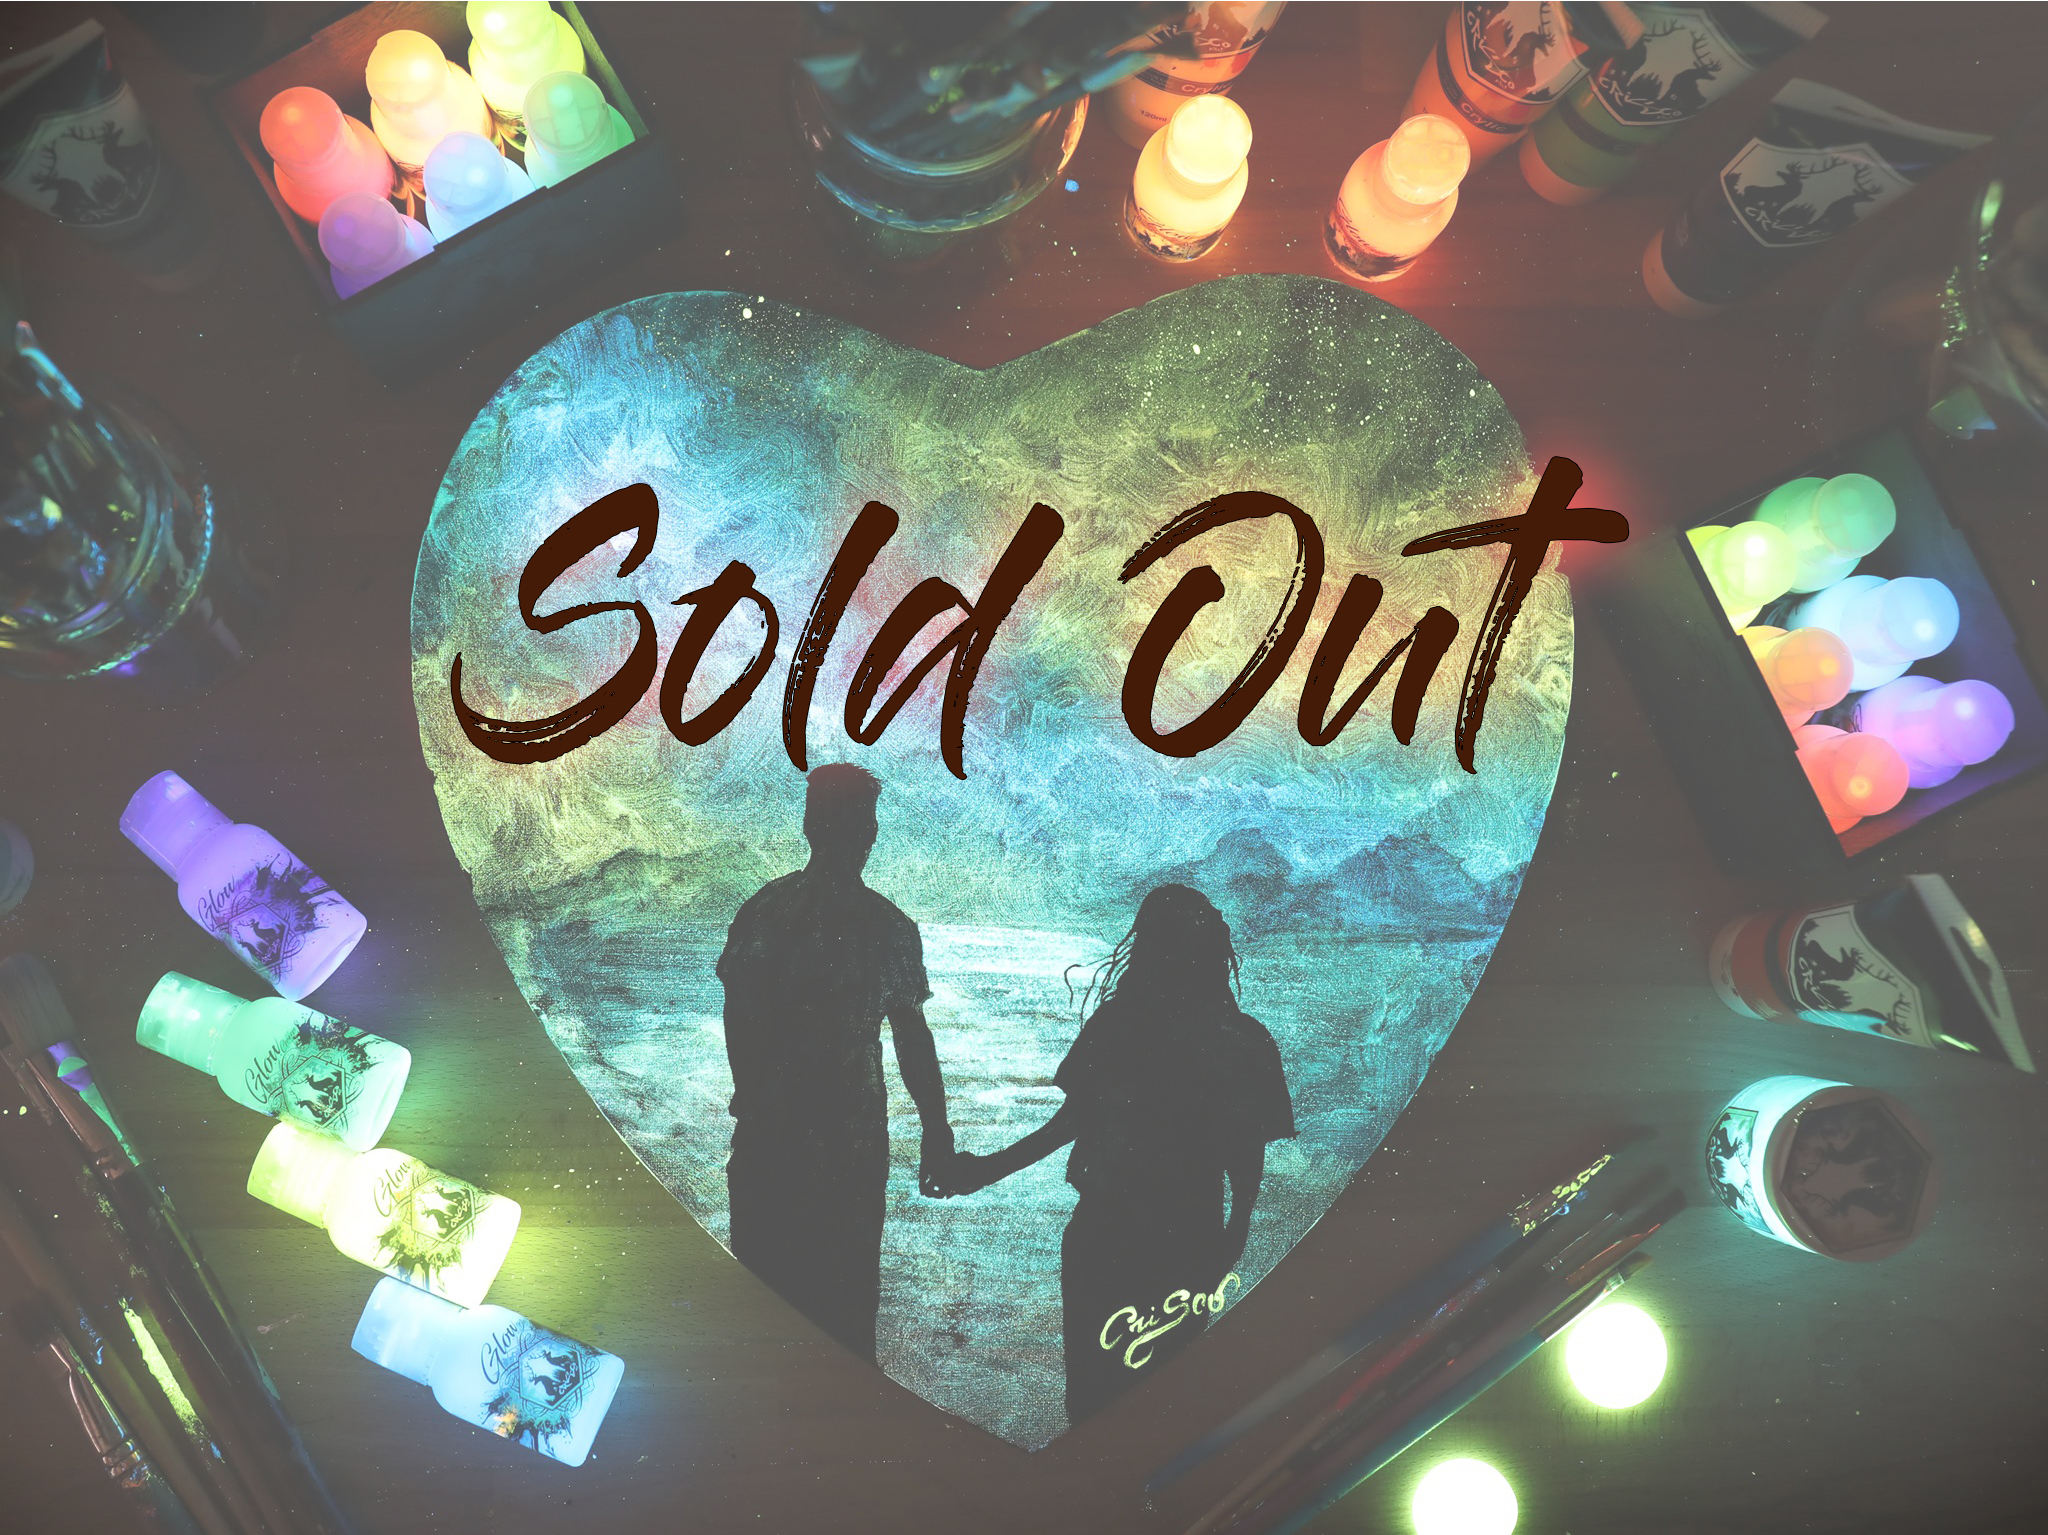 sold out fileXH